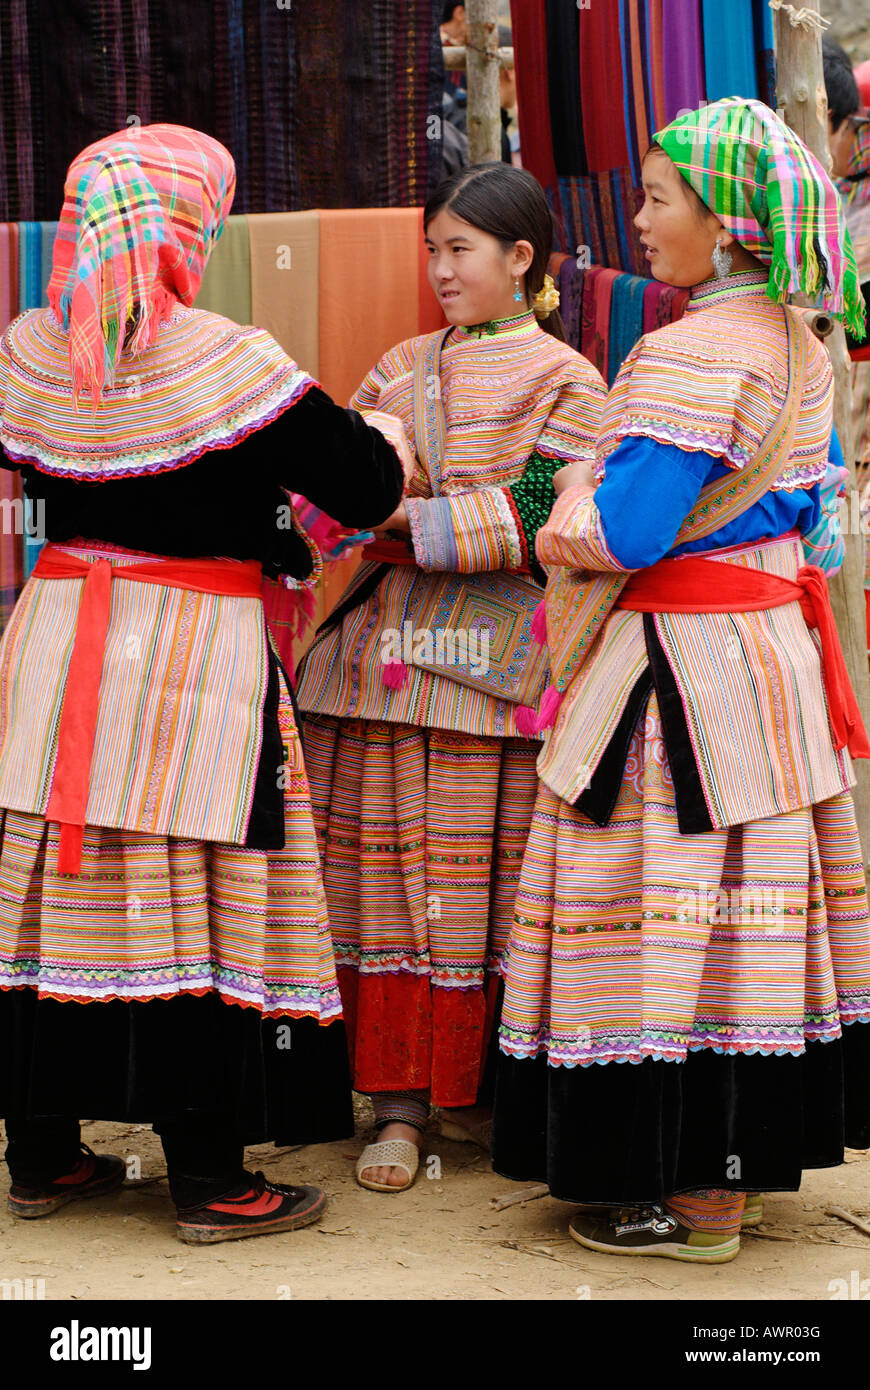 Woman of the Flower Hmong at Bac Ha market, Ha Giang Province, northern Vietnam - Stock Image